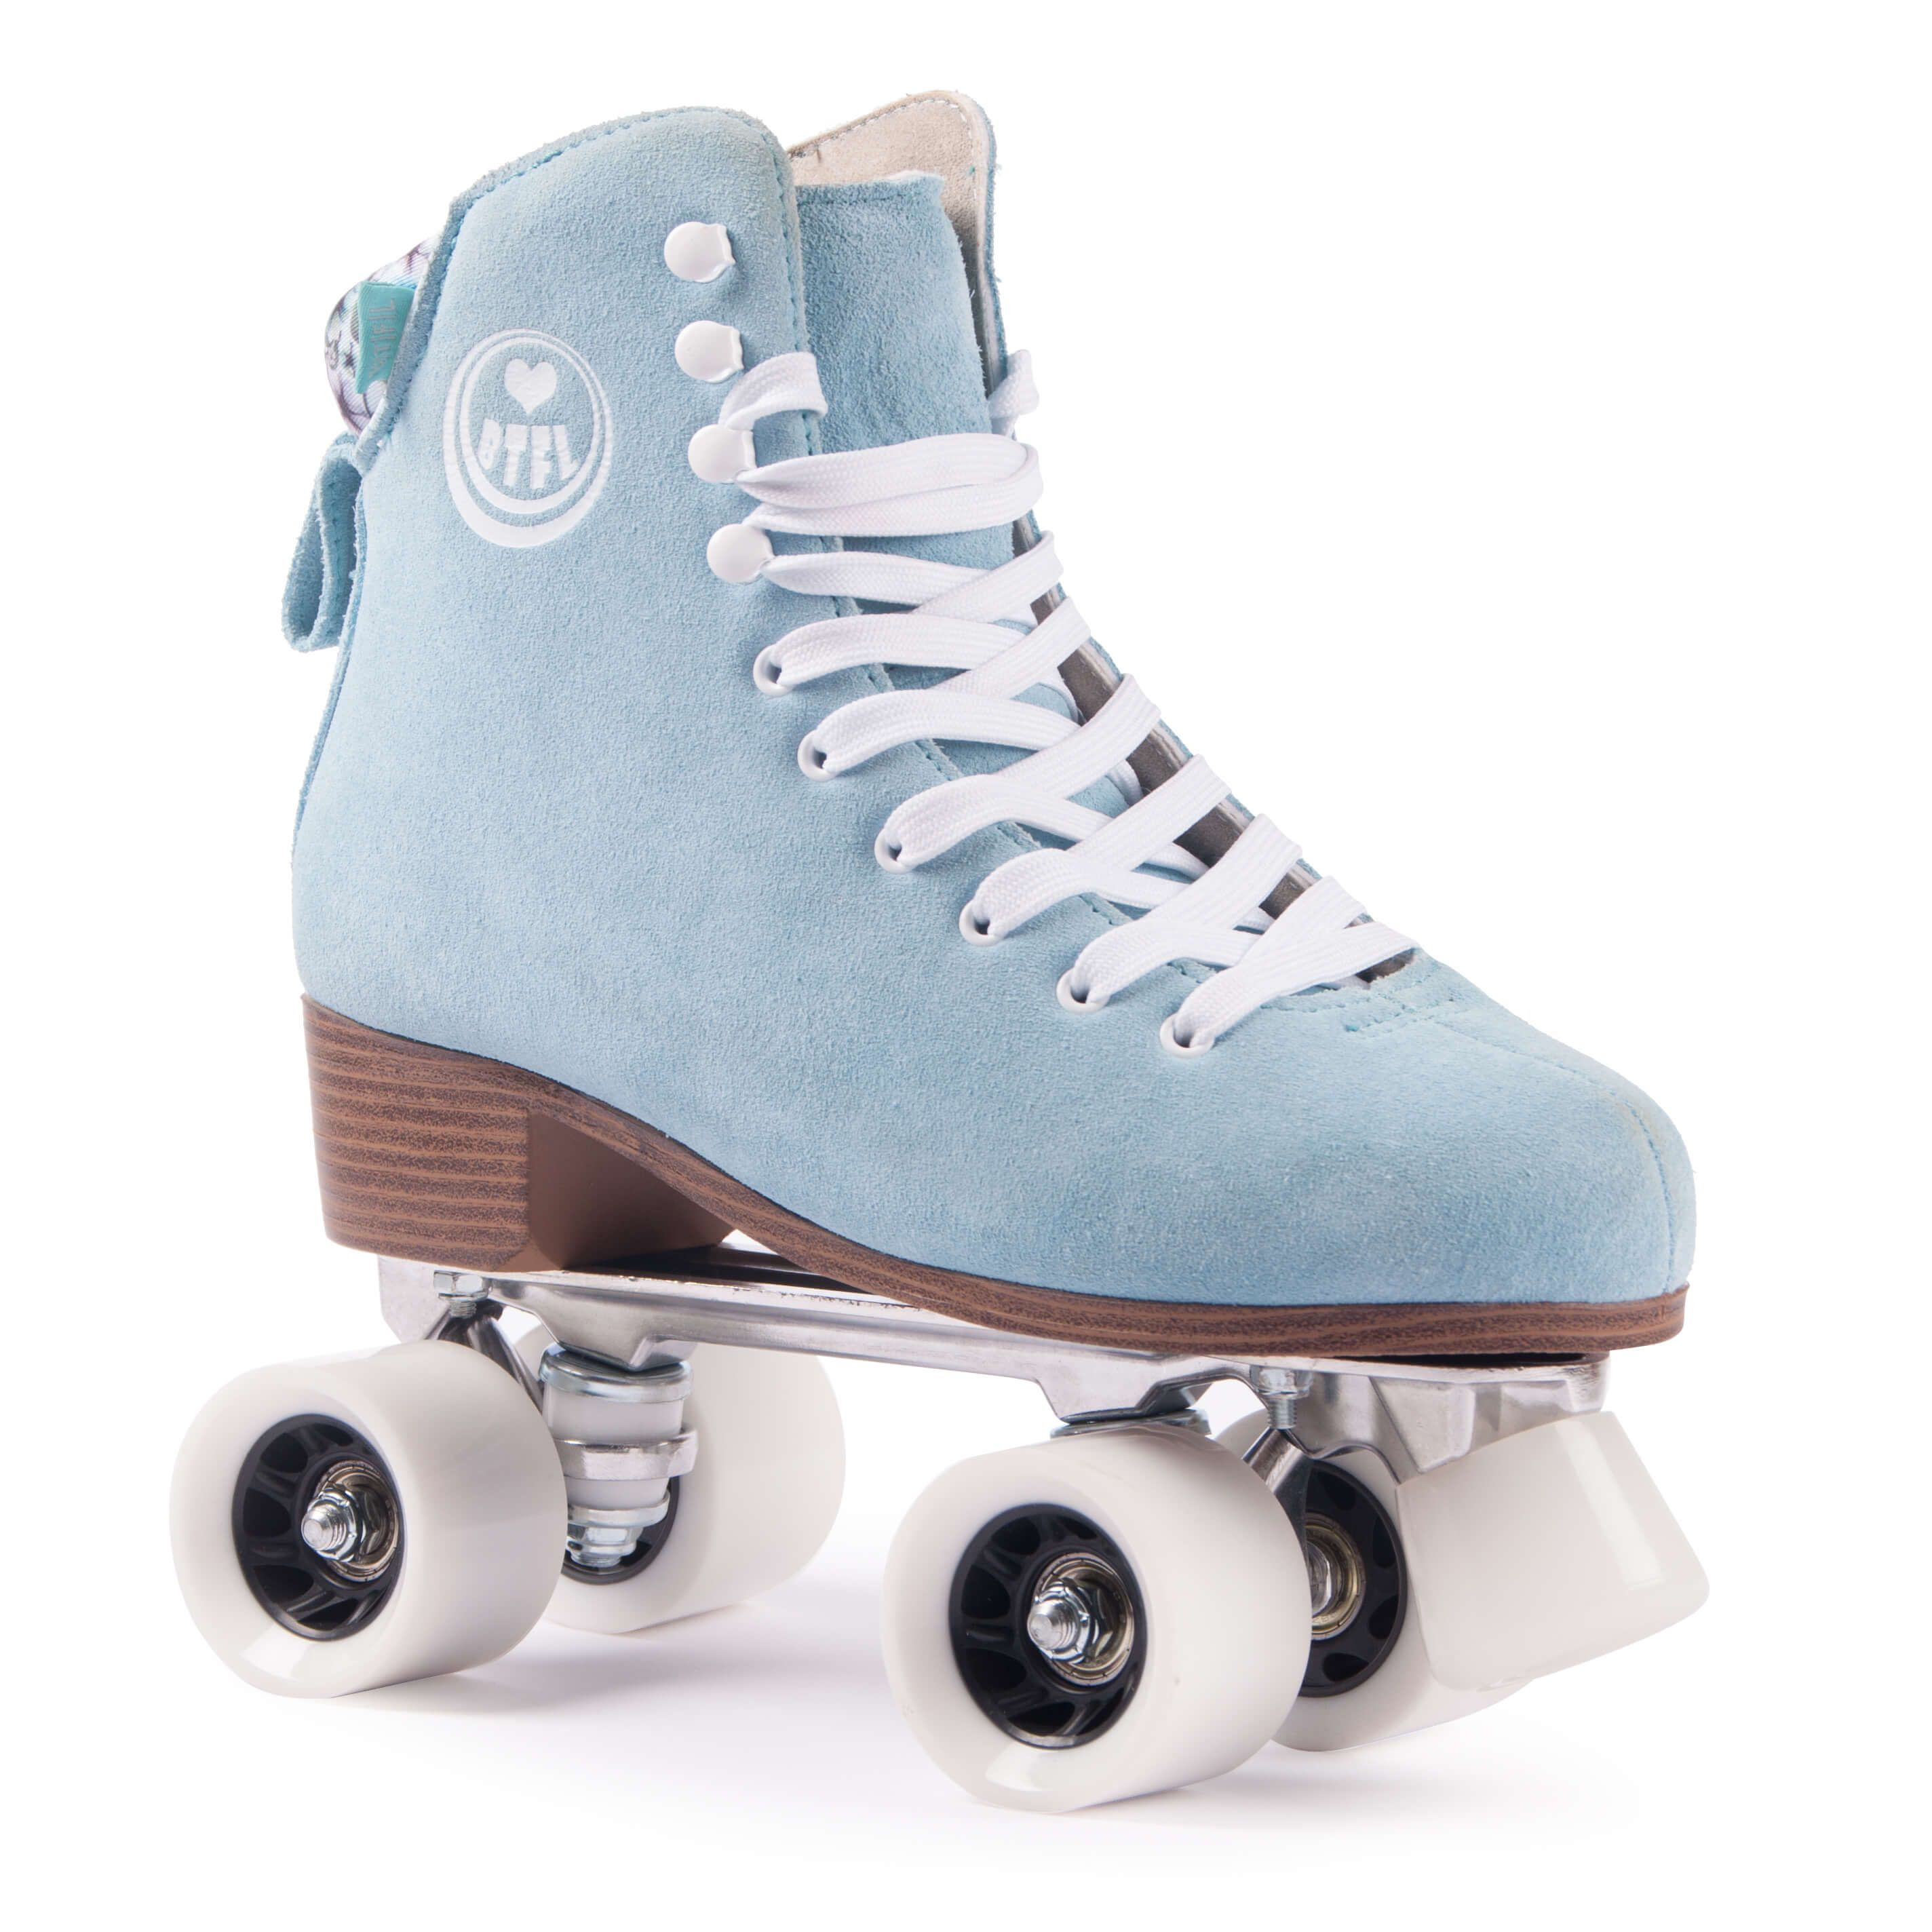 Bring back the feeling of the 70ies disco-boogie days when it all began  with these BTFL Roller Skate Classics! These skates have a timeless design  and ... 9d15c0f929